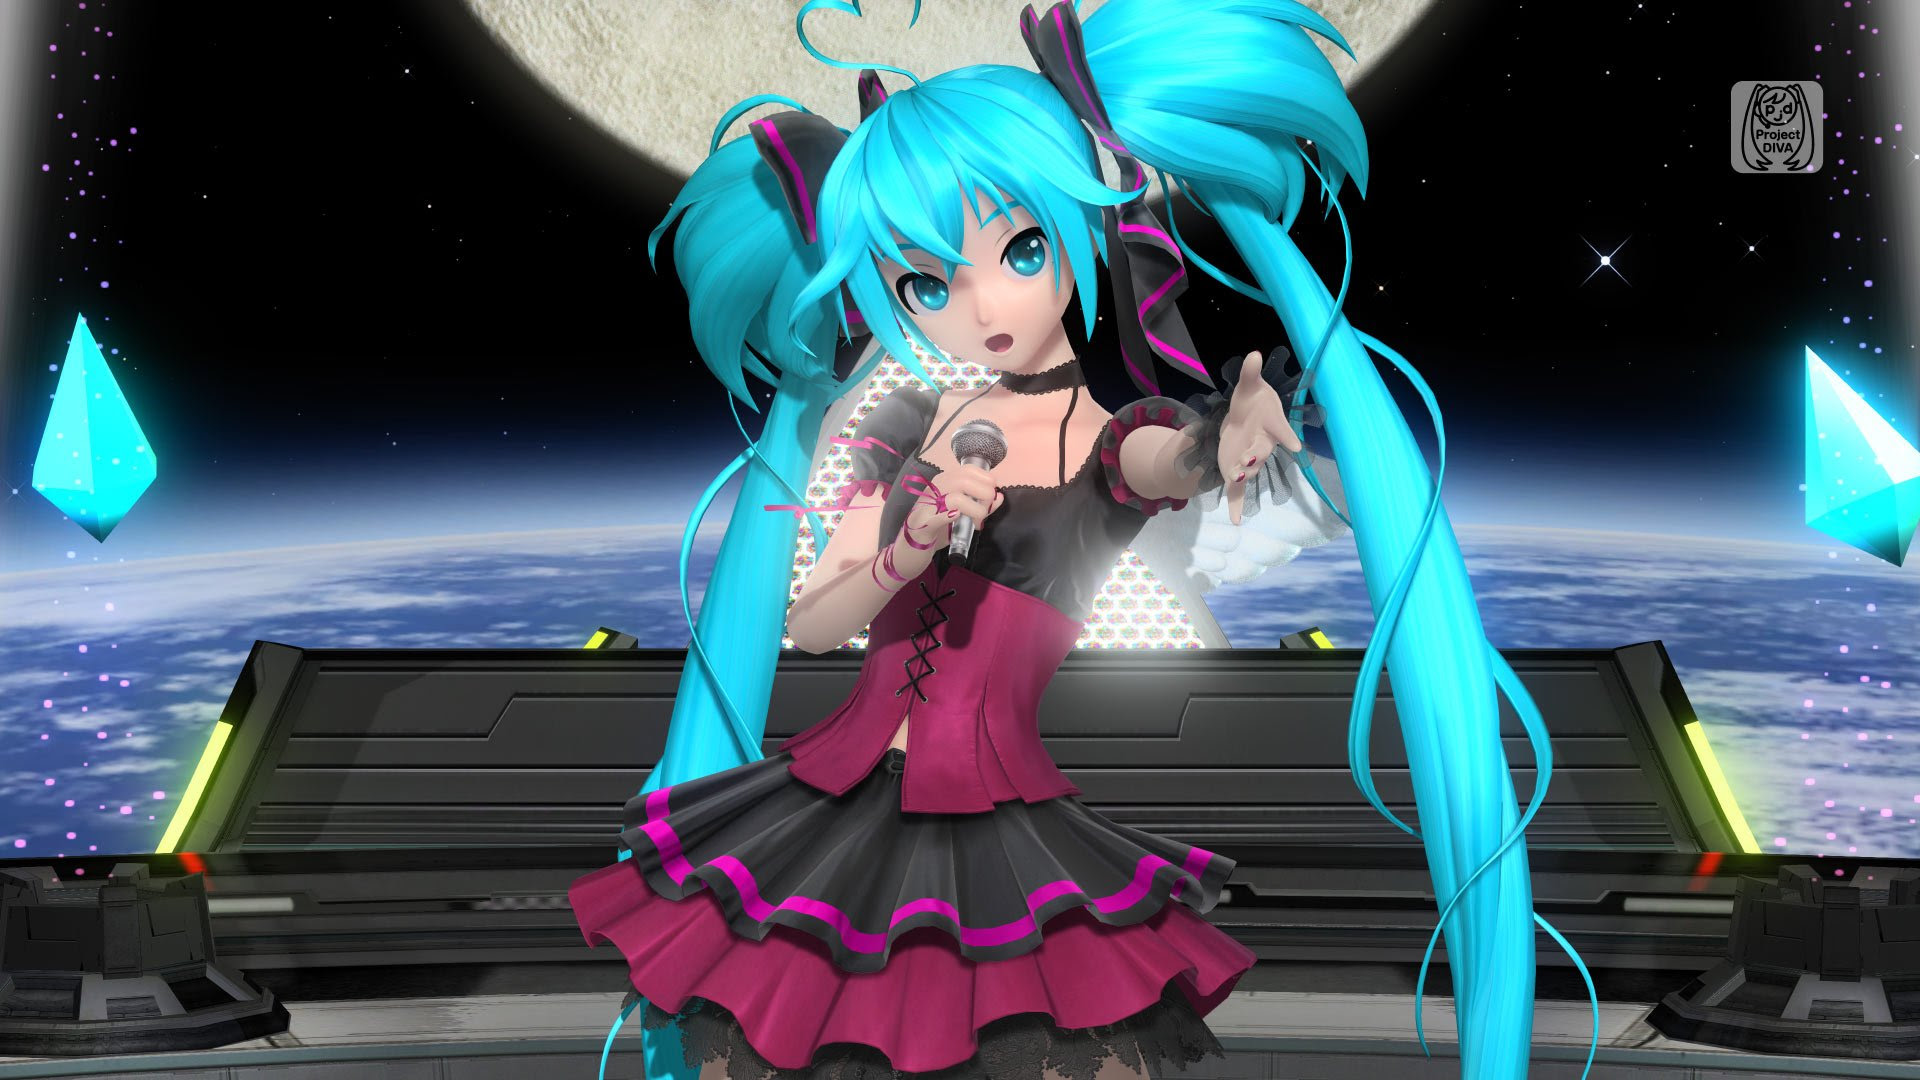 First details for Hatsune Miku: Project Diva Future Tone DX shown screenshot